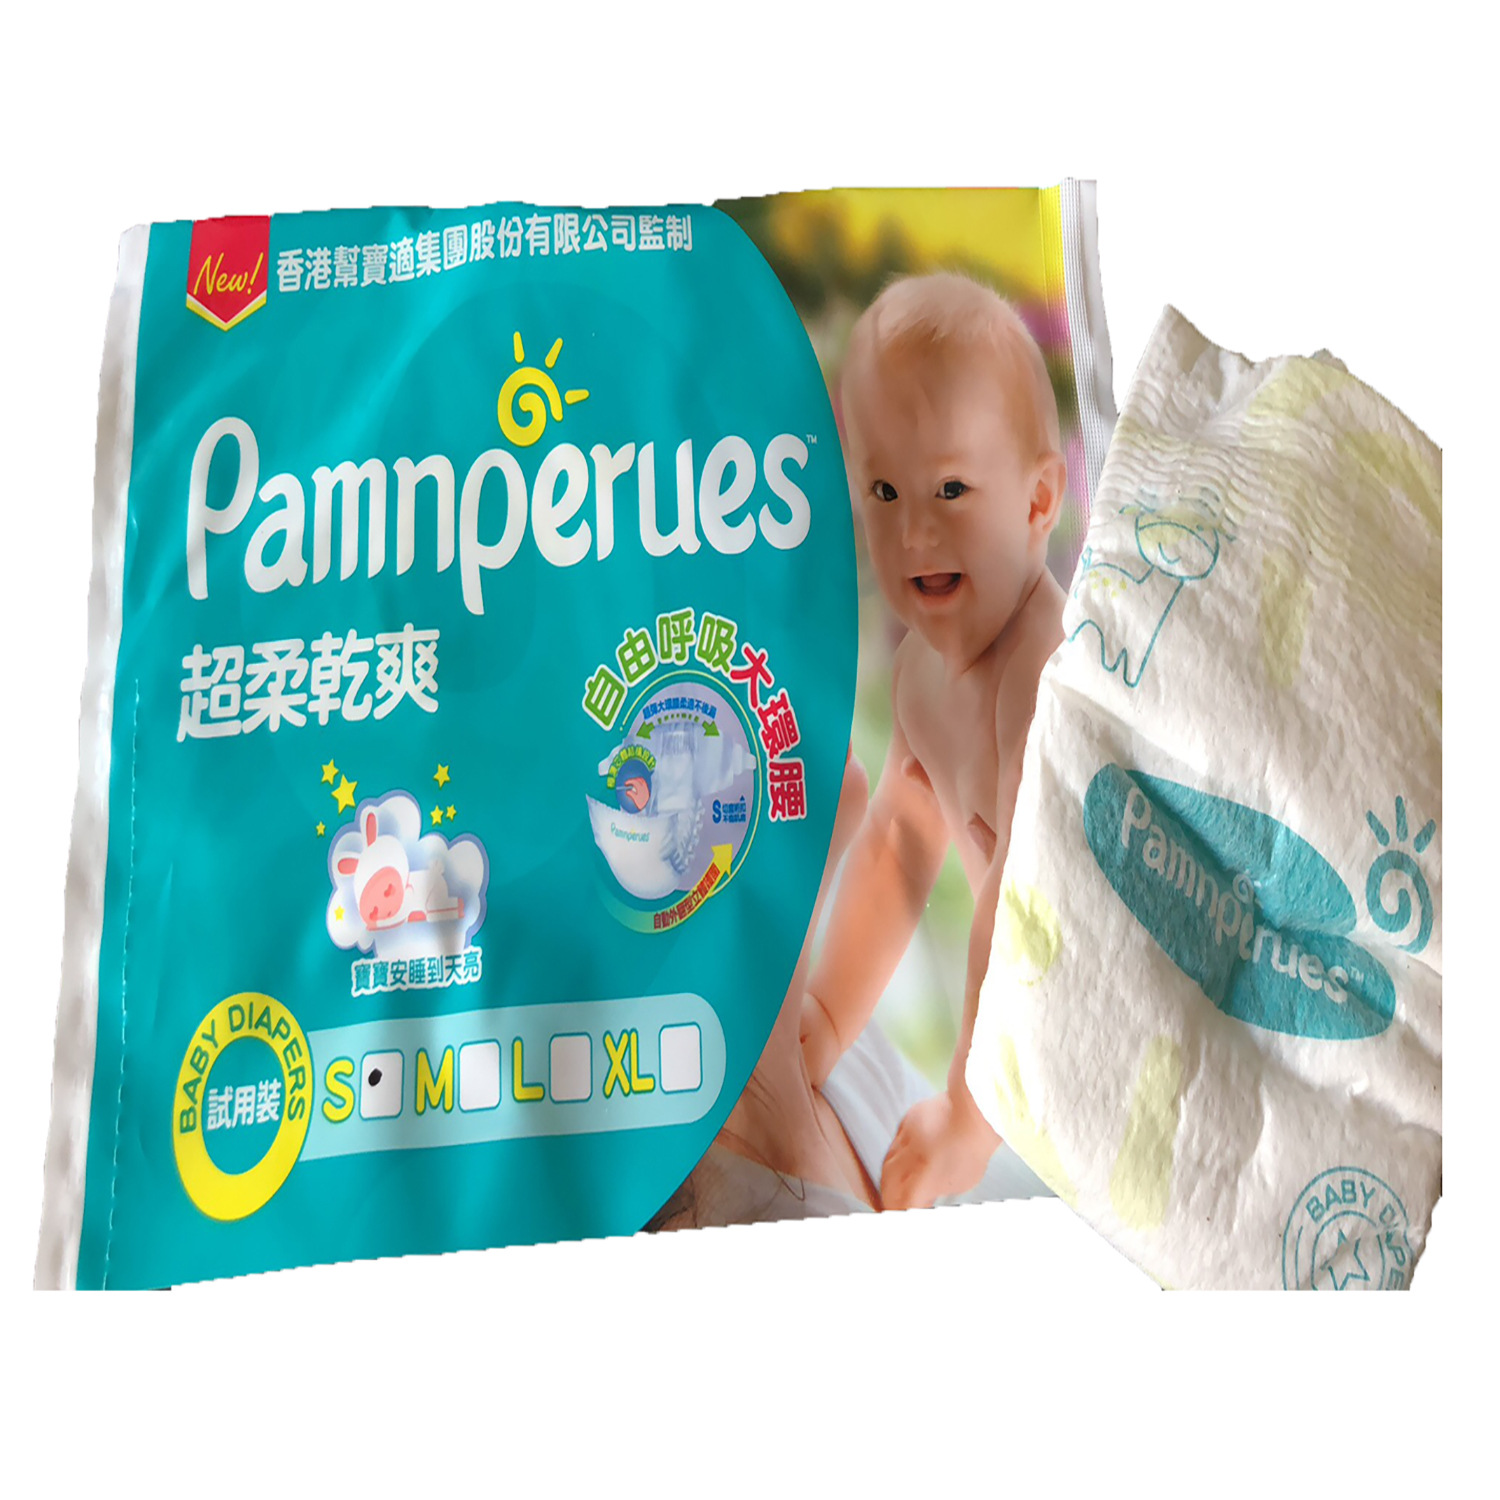 Hong Kong Pamnperues Diapers Trial Pack Ultra-Thin Soft And Trial Pack Baby Diapers Trial Pack